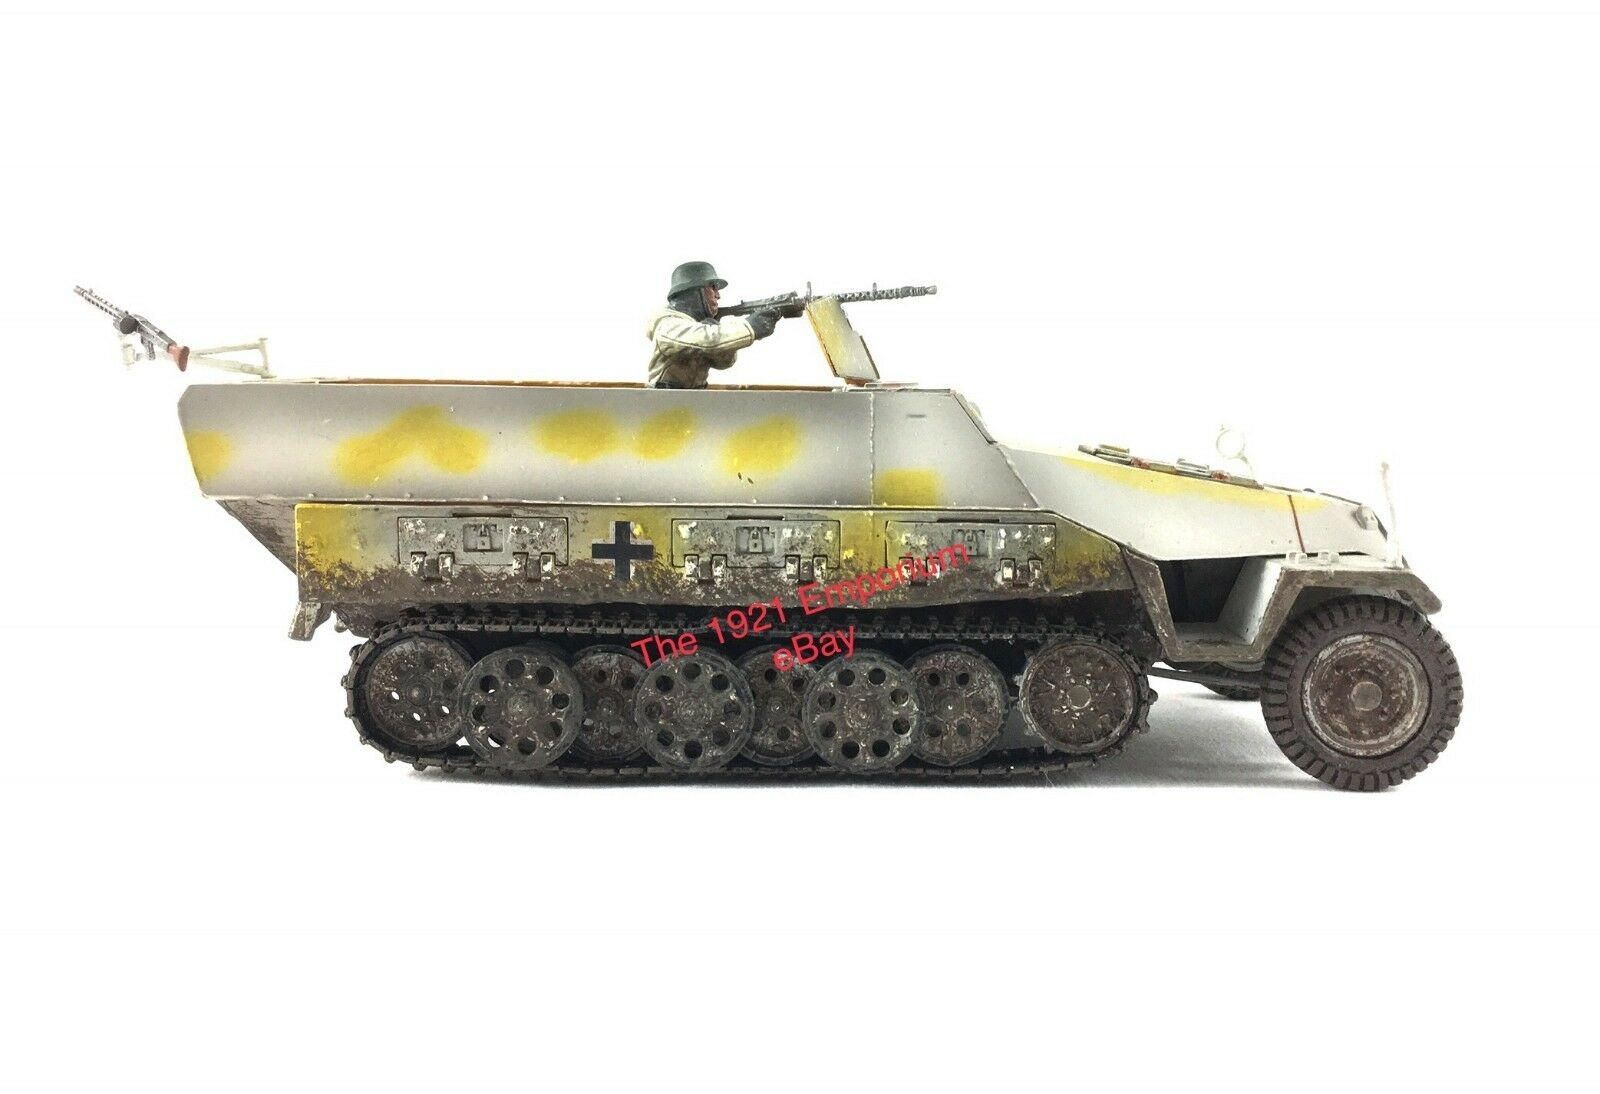 1 32 Diecast Unimax Toys Forces of valor alemán Hanomag Sdkfz 251 Latas